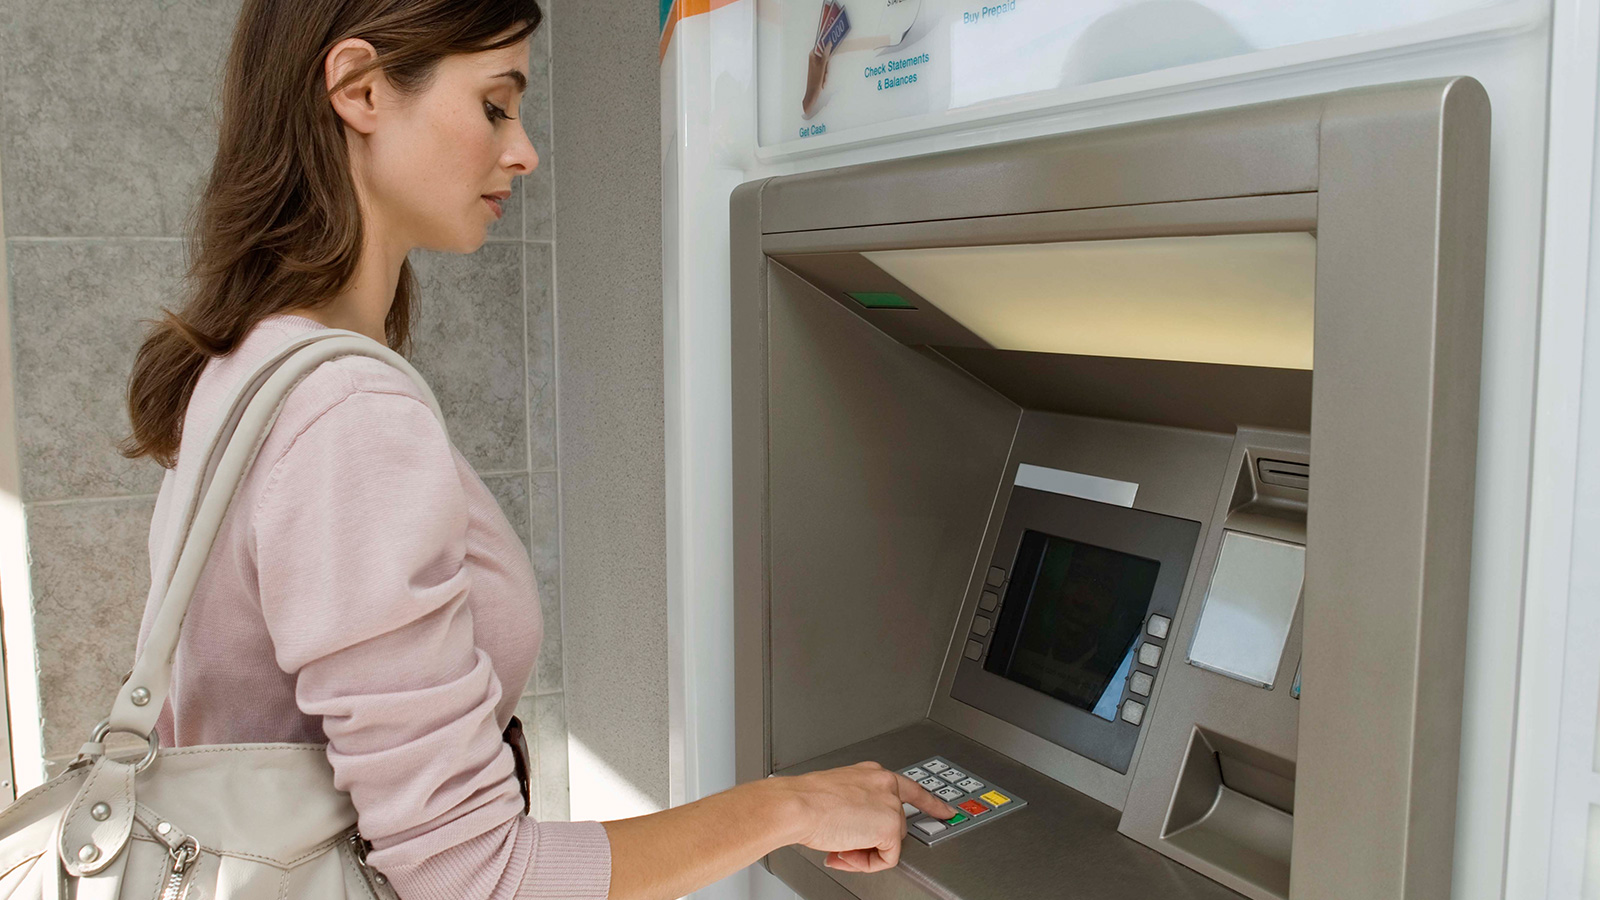 Woman using ATM.